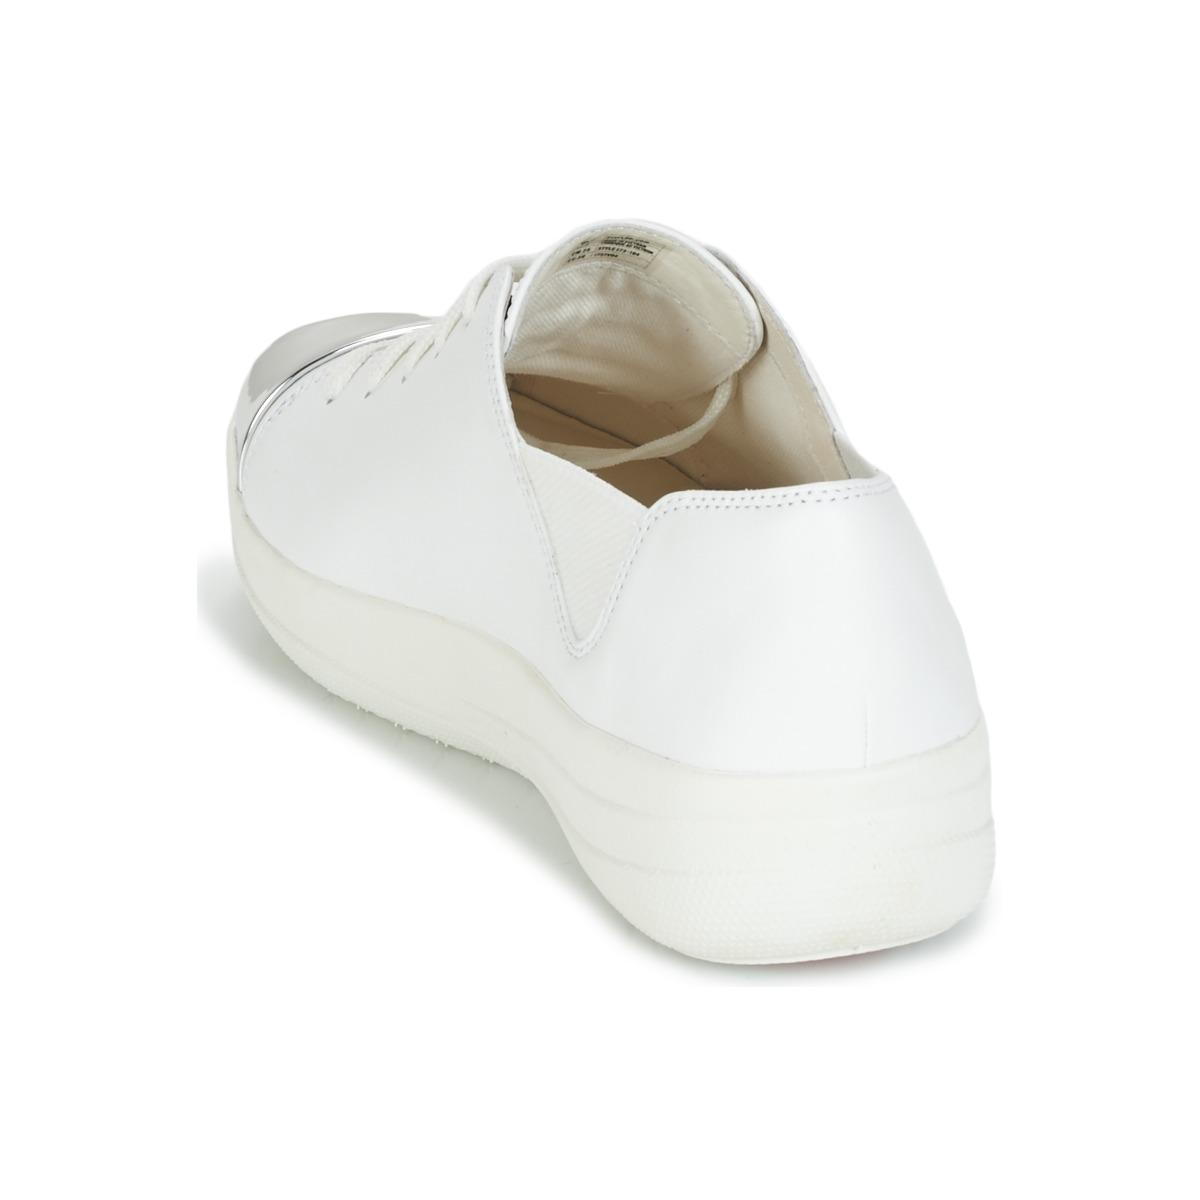 Fitflop F-sporty Mirror-toe Sneakers Shoes (trainers) in White